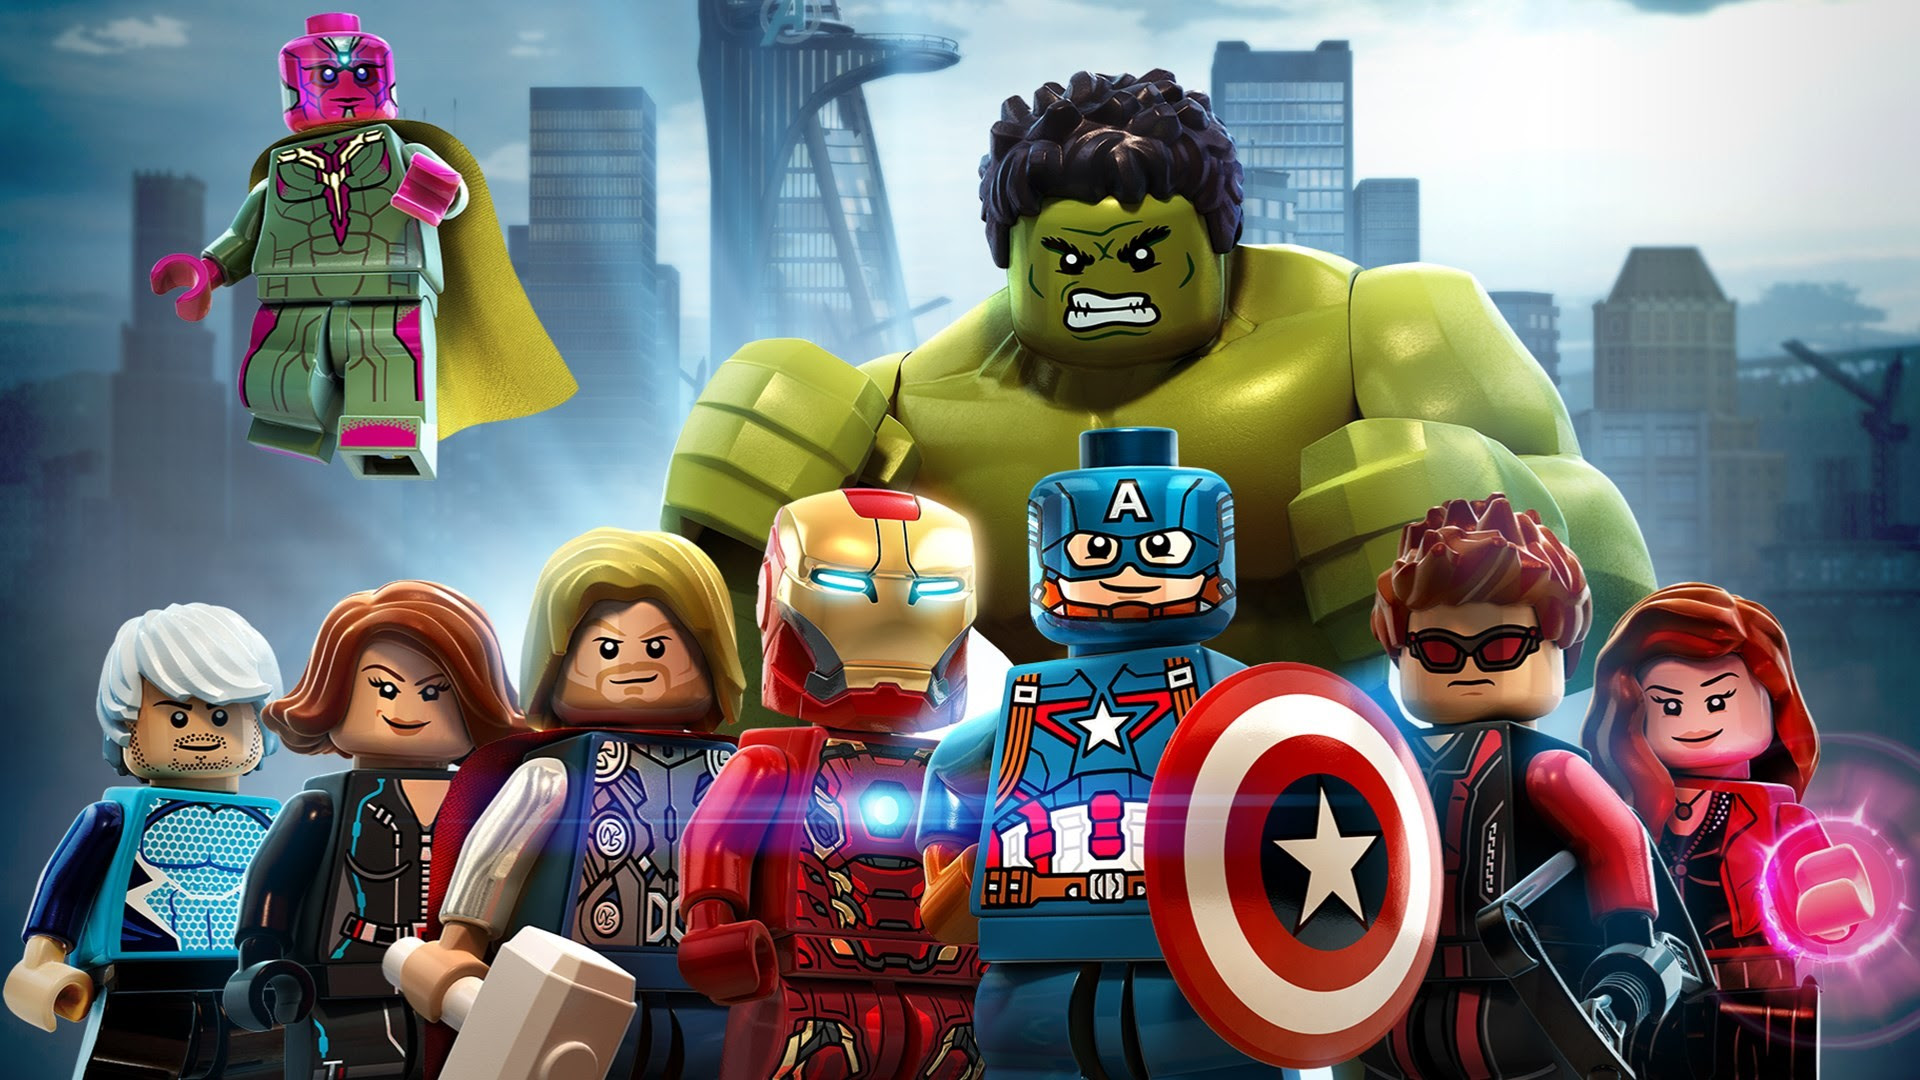 Lego Avengers Wallpaper Hd 74 Images